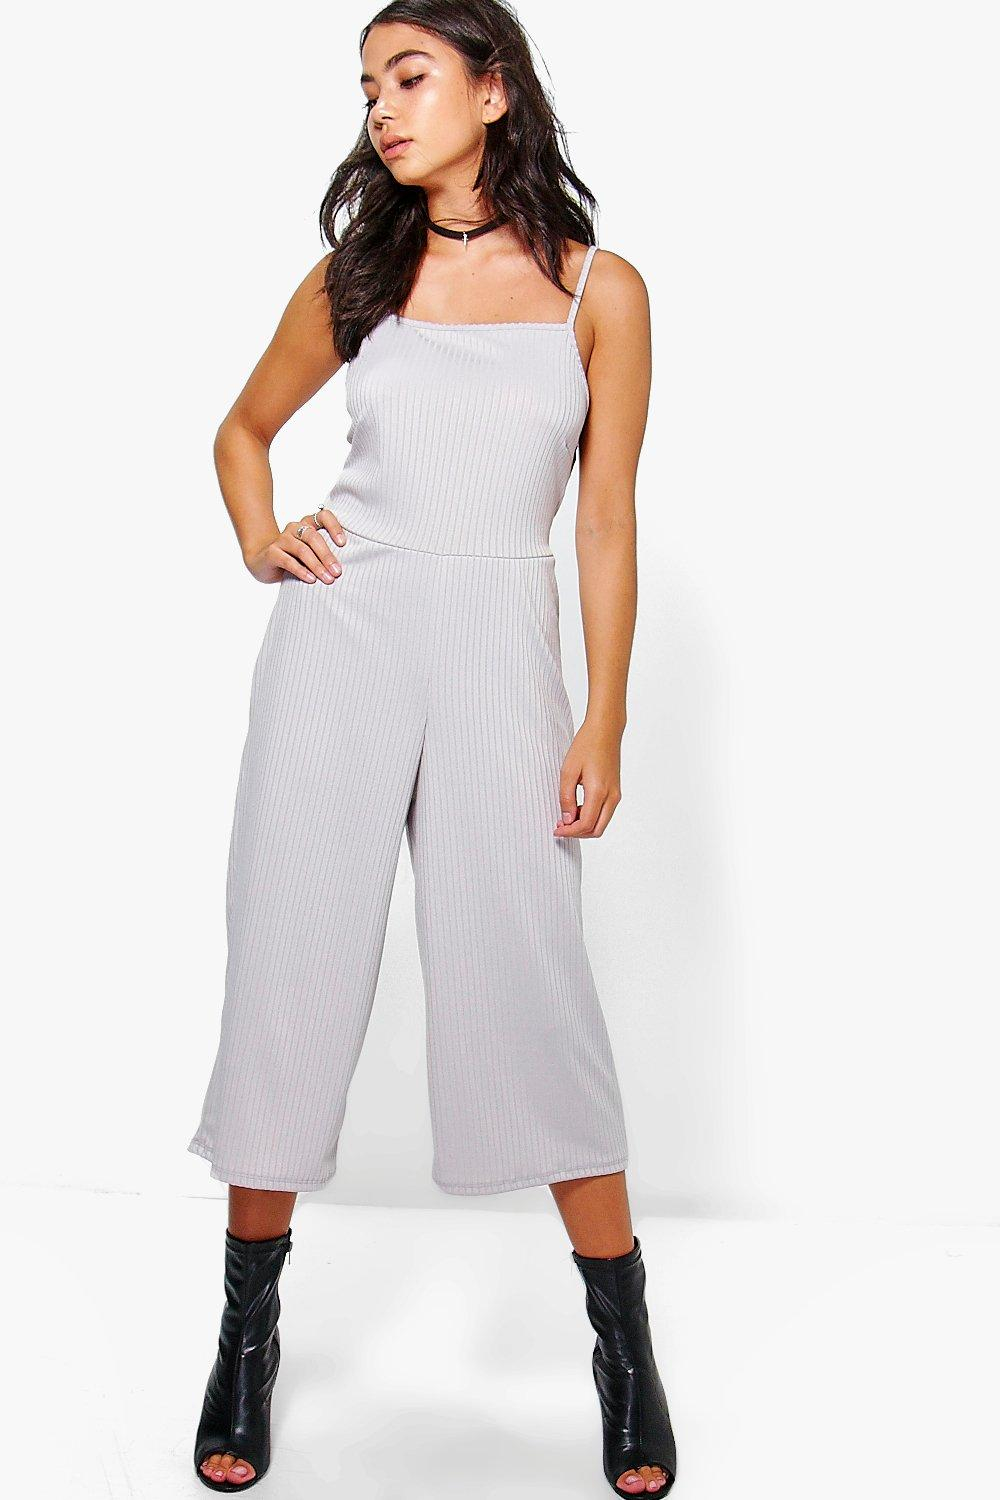 49a70dd73b1 Boohoo Sarah Strappy Ribbed Culotte Jumpsuit in Metallic - Lyst